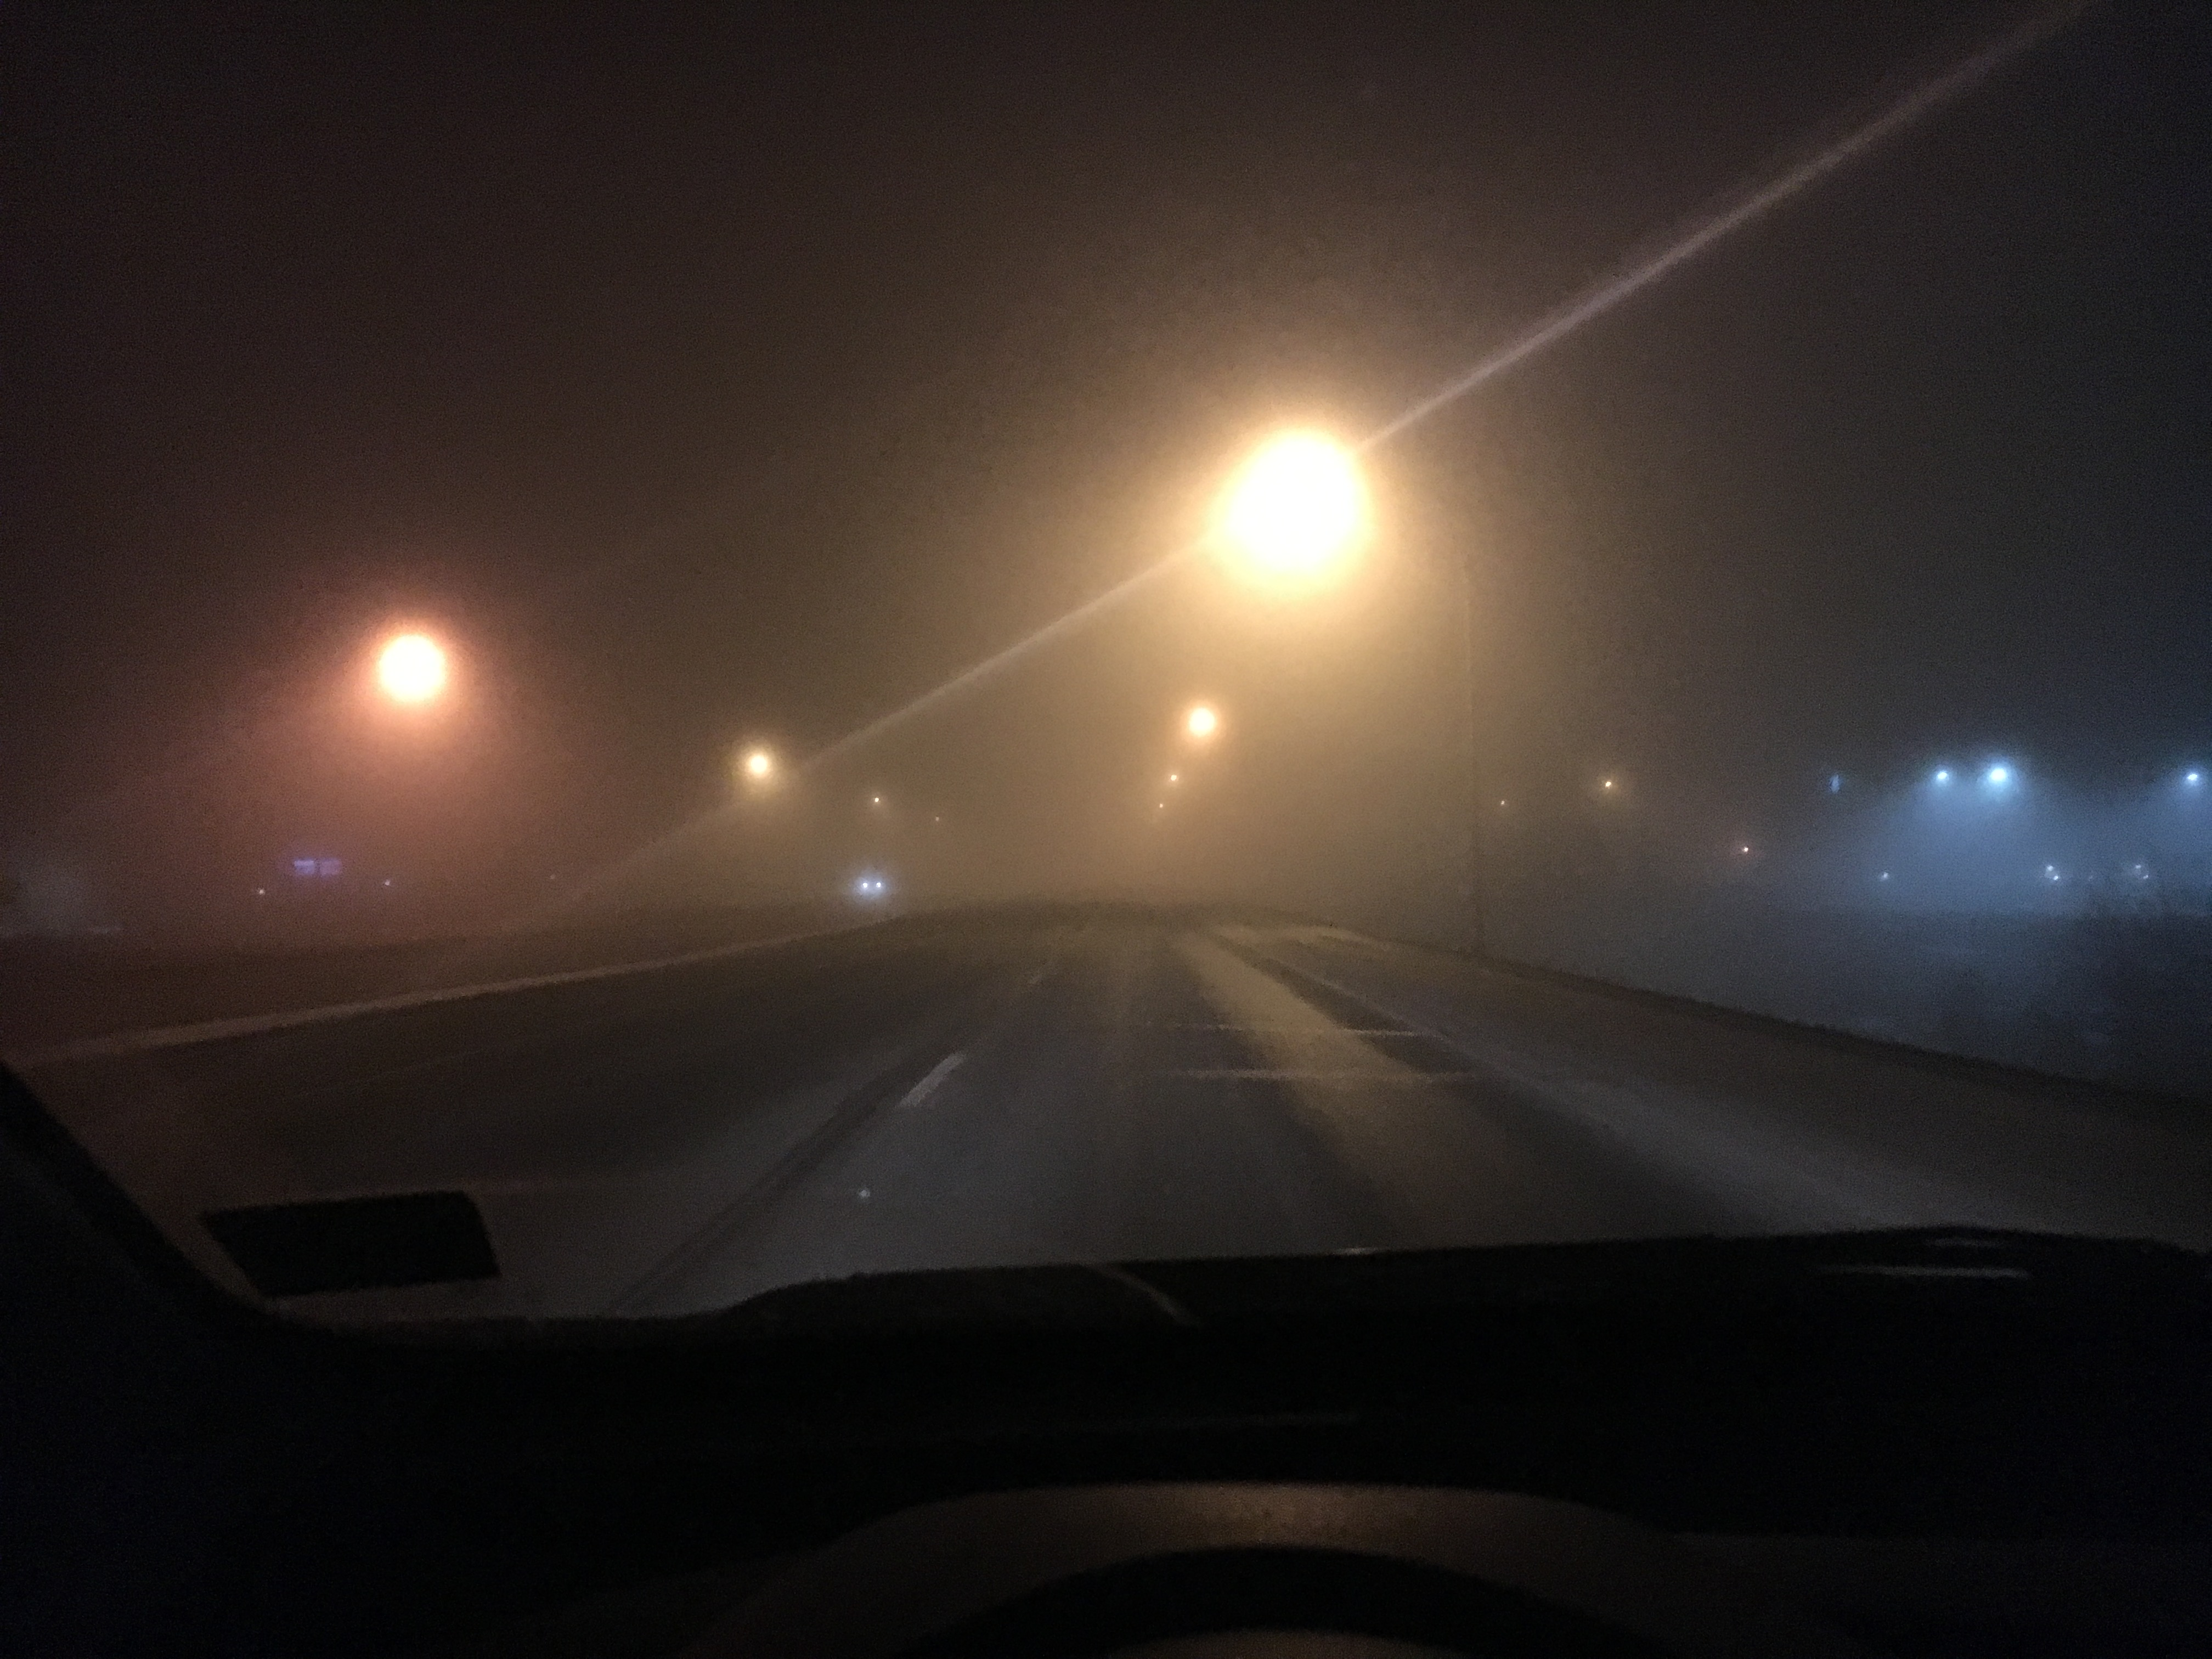 A foggy night in Bismarck, North Dakota. This is reducing visibility.